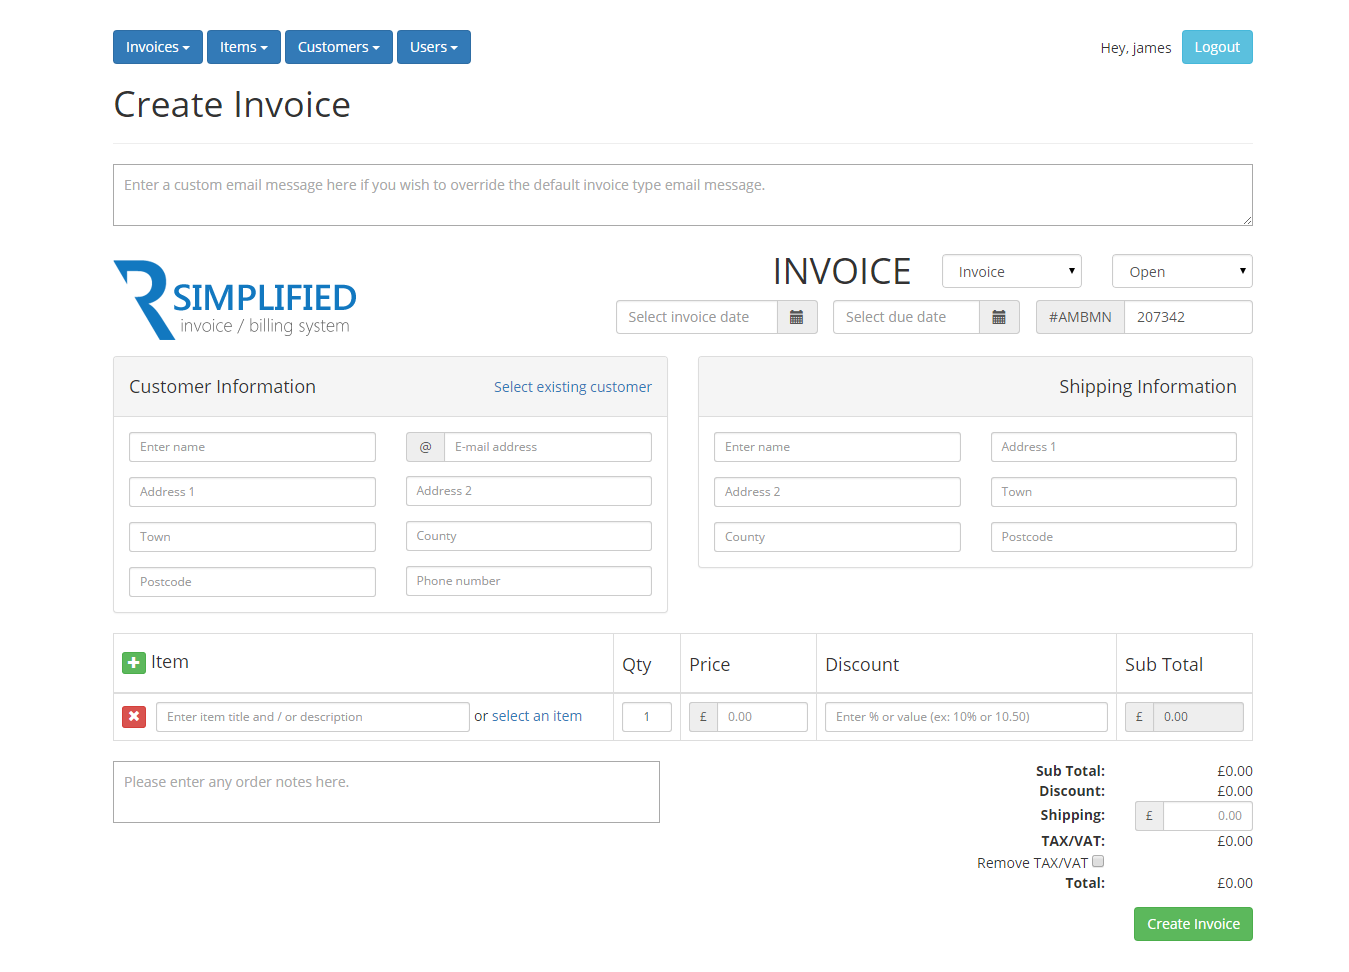 Soulfulpowerus  Ravishing Simplified Php Invoice  Billing System By Rebootdigitaluk  With Licious  Createinvoicepng  With Cute Ford F  Invoice Also Create An Invoice In Microsoft Word In Addition Illustration Invoice And Dental Invoice Template As Well As Invoice Freelance Additionally Invoice For Paypal From Codecanyonnet With Soulfulpowerus  Licious Simplified Php Invoice  Billing System By Rebootdigitaluk  With Cute  Createinvoicepng  And Ravishing Ford F  Invoice Also Create An Invoice In Microsoft Word In Addition Illustration Invoice From Codecanyonnet